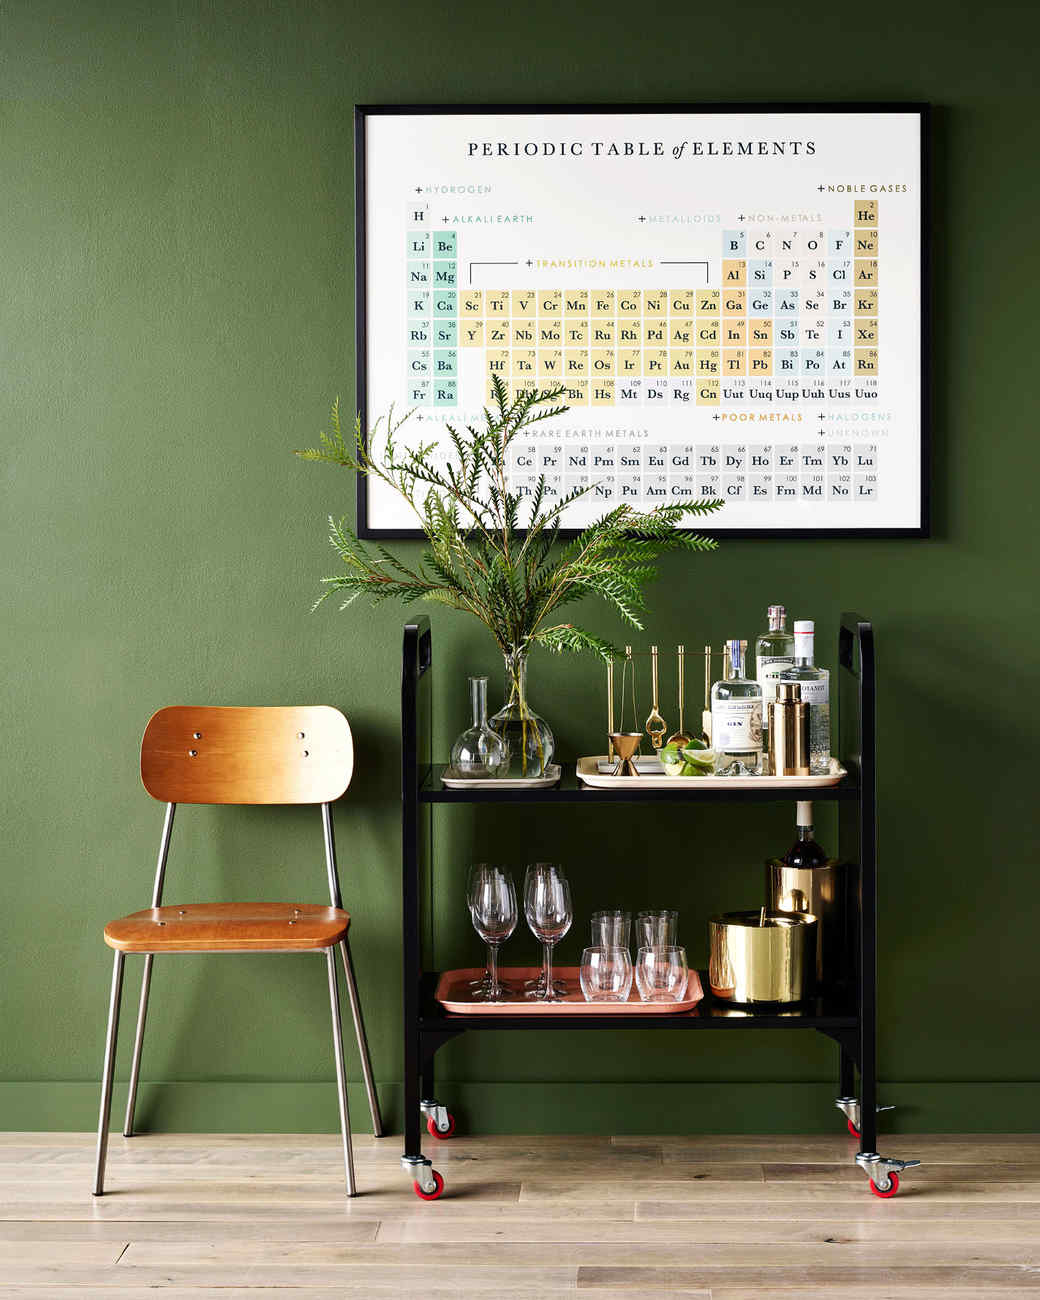 geek library cart periodic table beakers